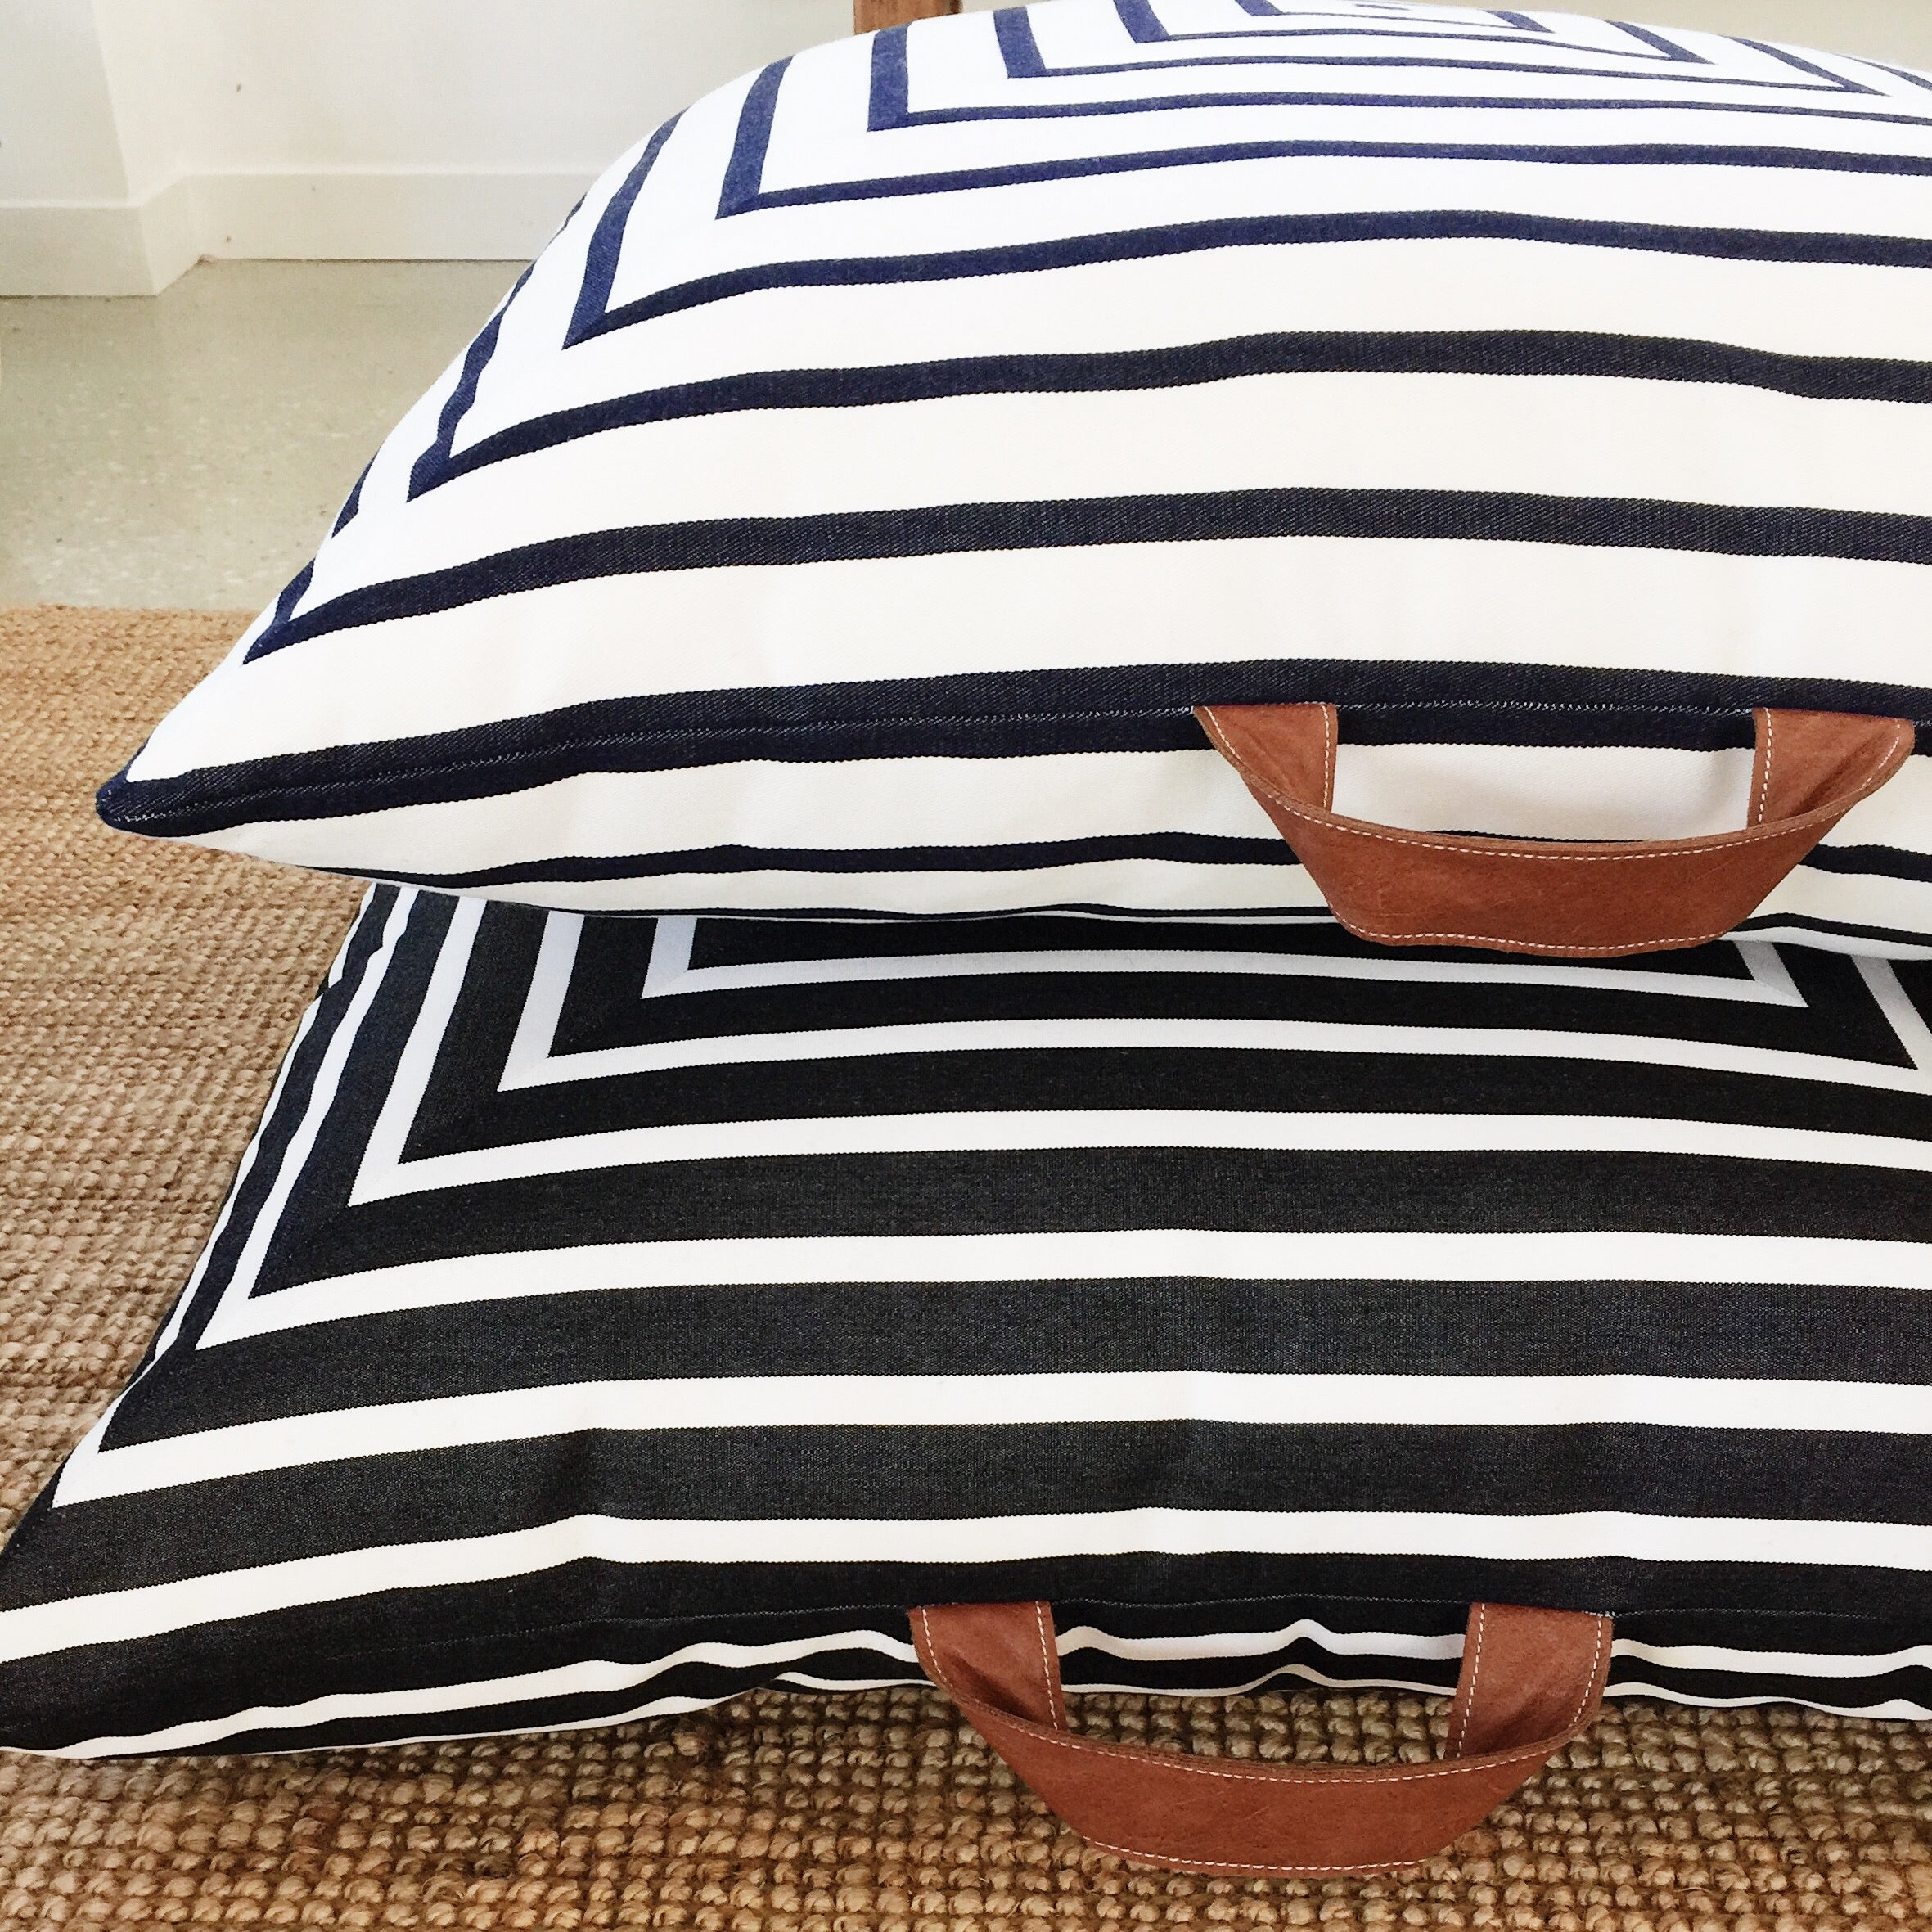 Striped Square OUTDOOR Floor Cushions - SquareFox